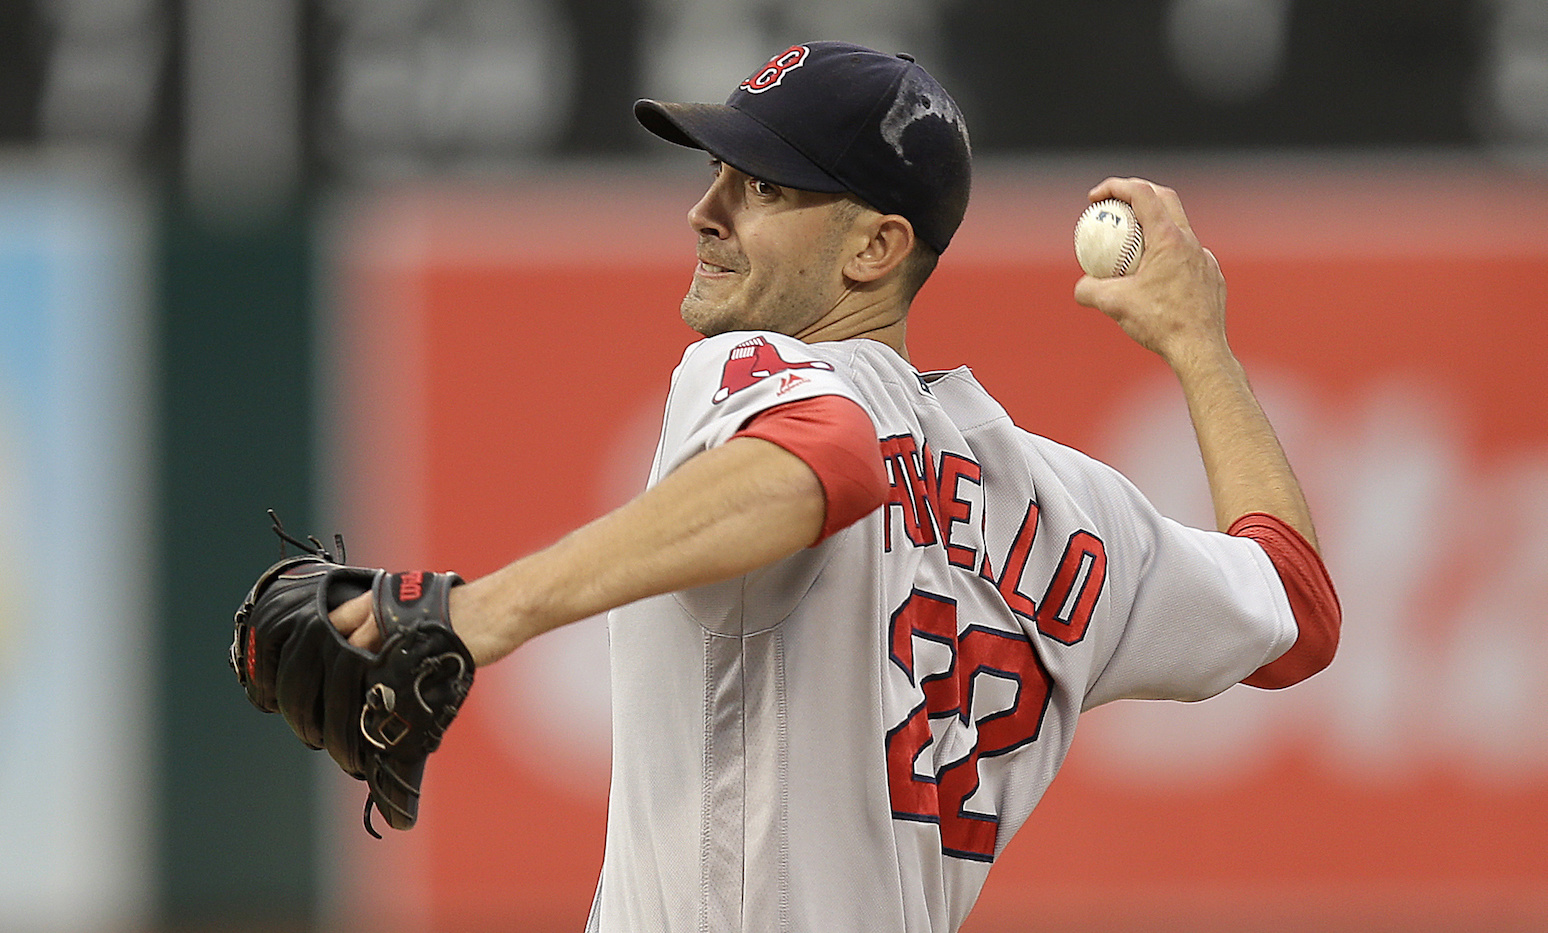 In this Sept. 3, 2016, file photo, Boston Red Sox pitcher Rick Porcello works against the Oakland Athletics in the first inning of a baseball game, in Oakland, Calif. Tight races are expected for the Cy Young awards, with Corey Kluber, Justin Verlander and Rick Porcello up for the American League honor.(Ben Margot/AP Photo)